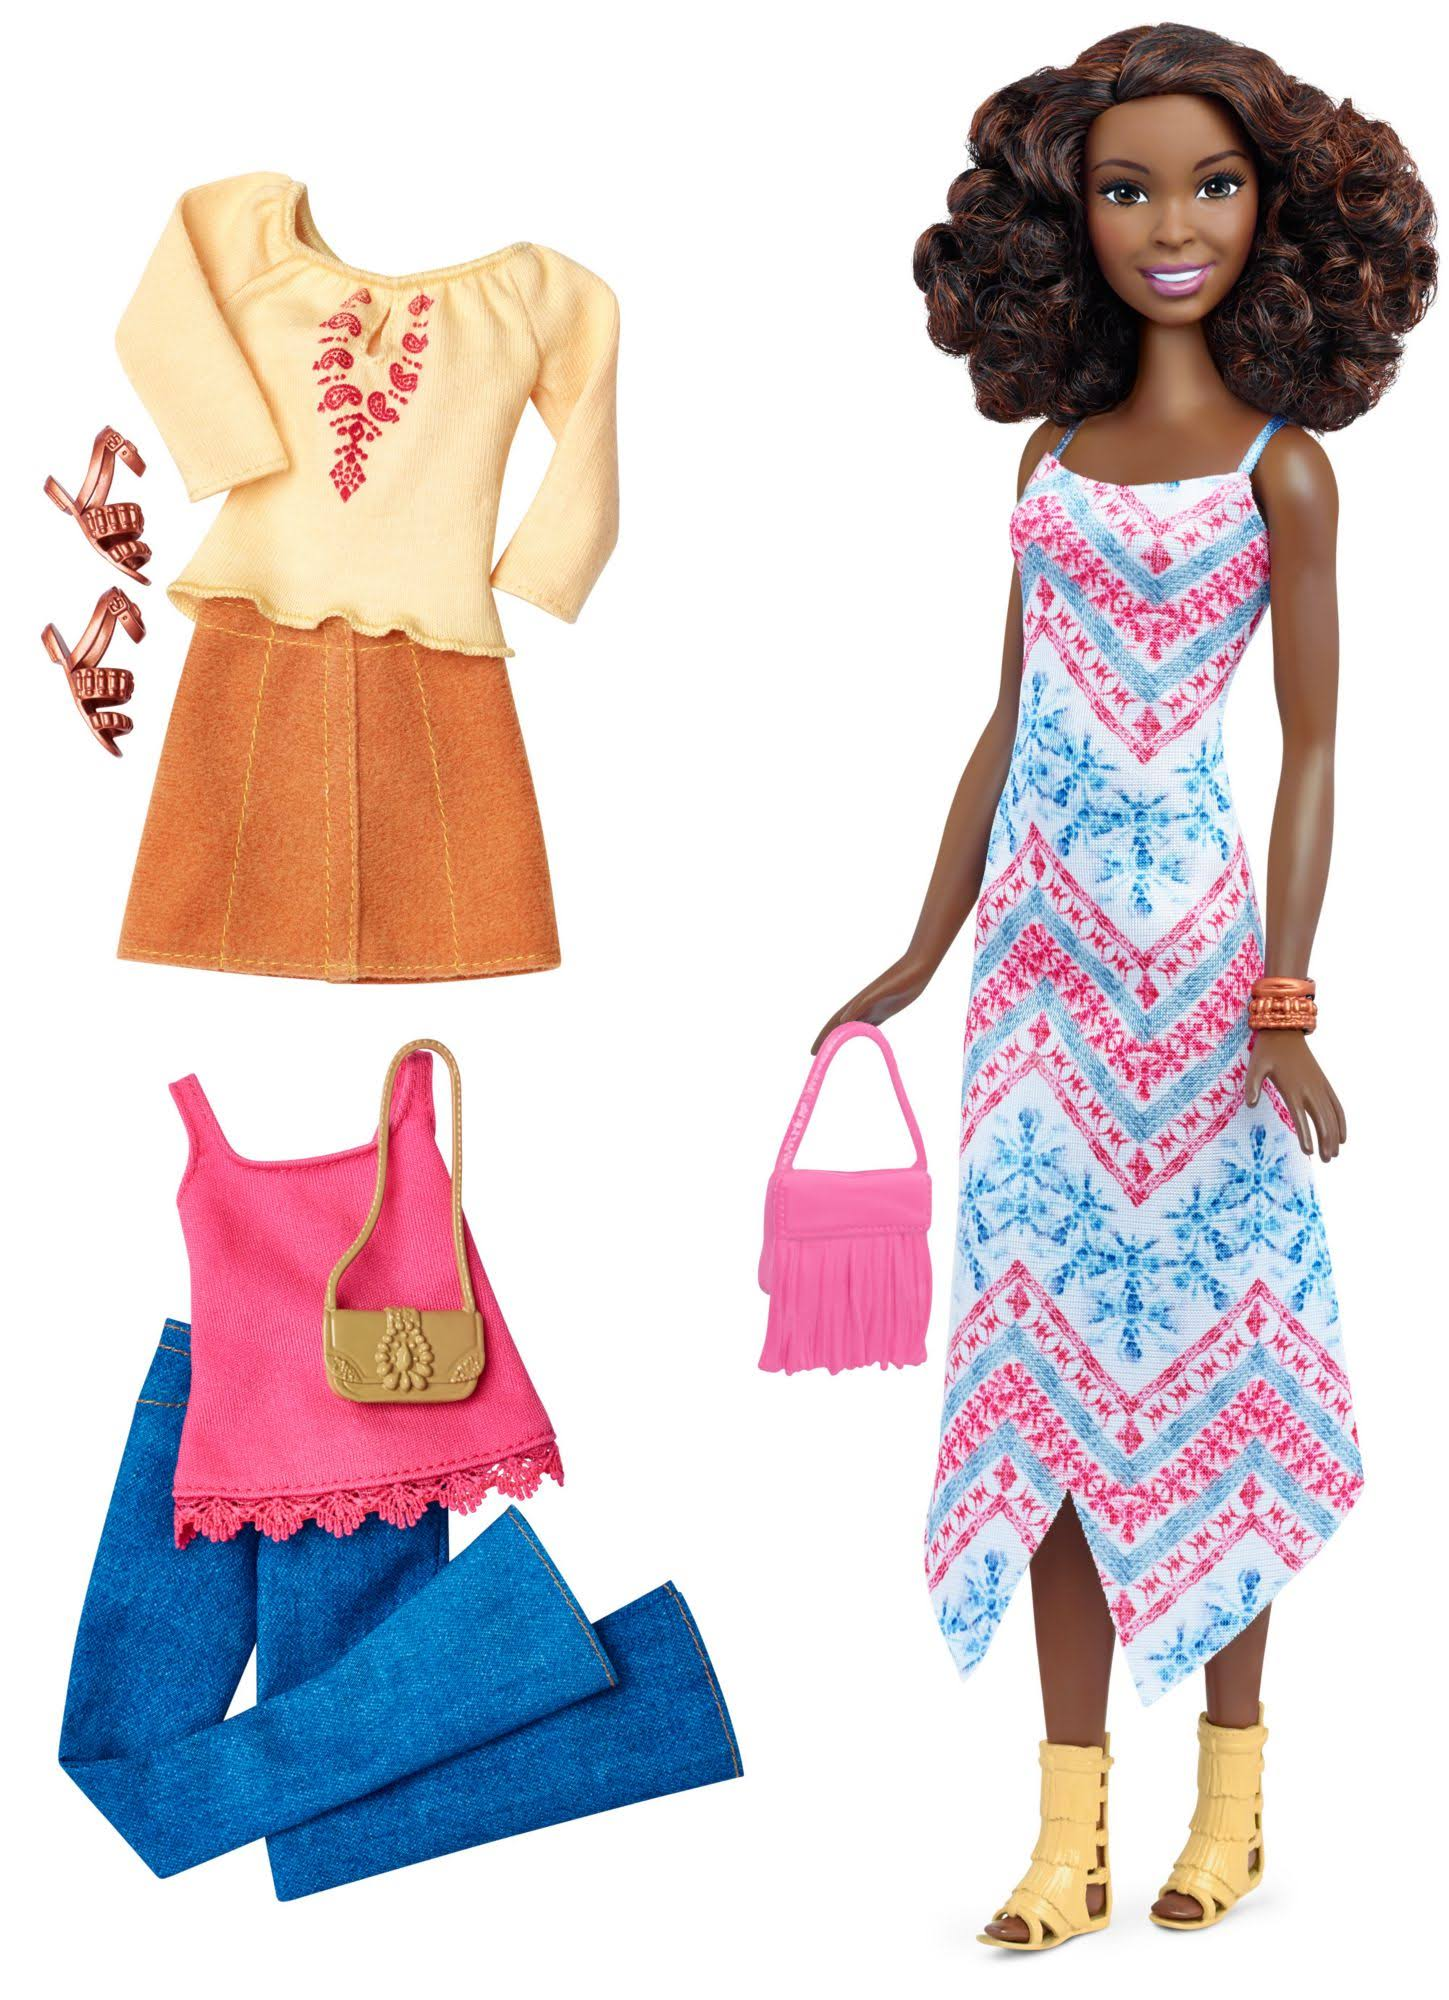 Barbie Fashionistas Doll - Boho Fringe